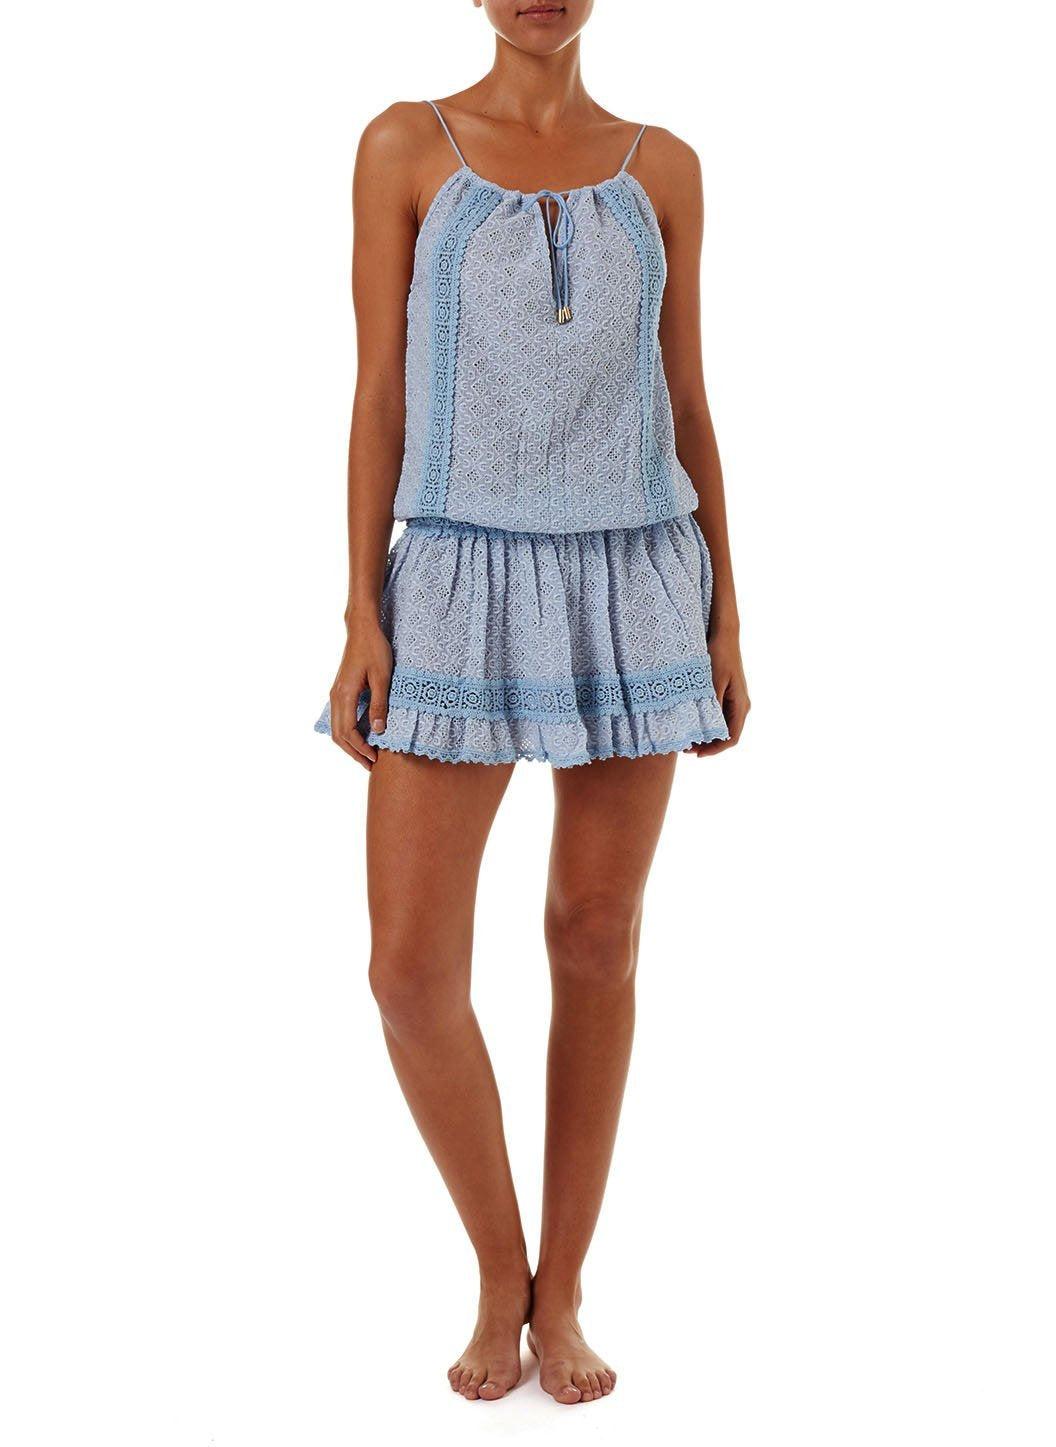 chelsea maya openback short beach dress 2019 F